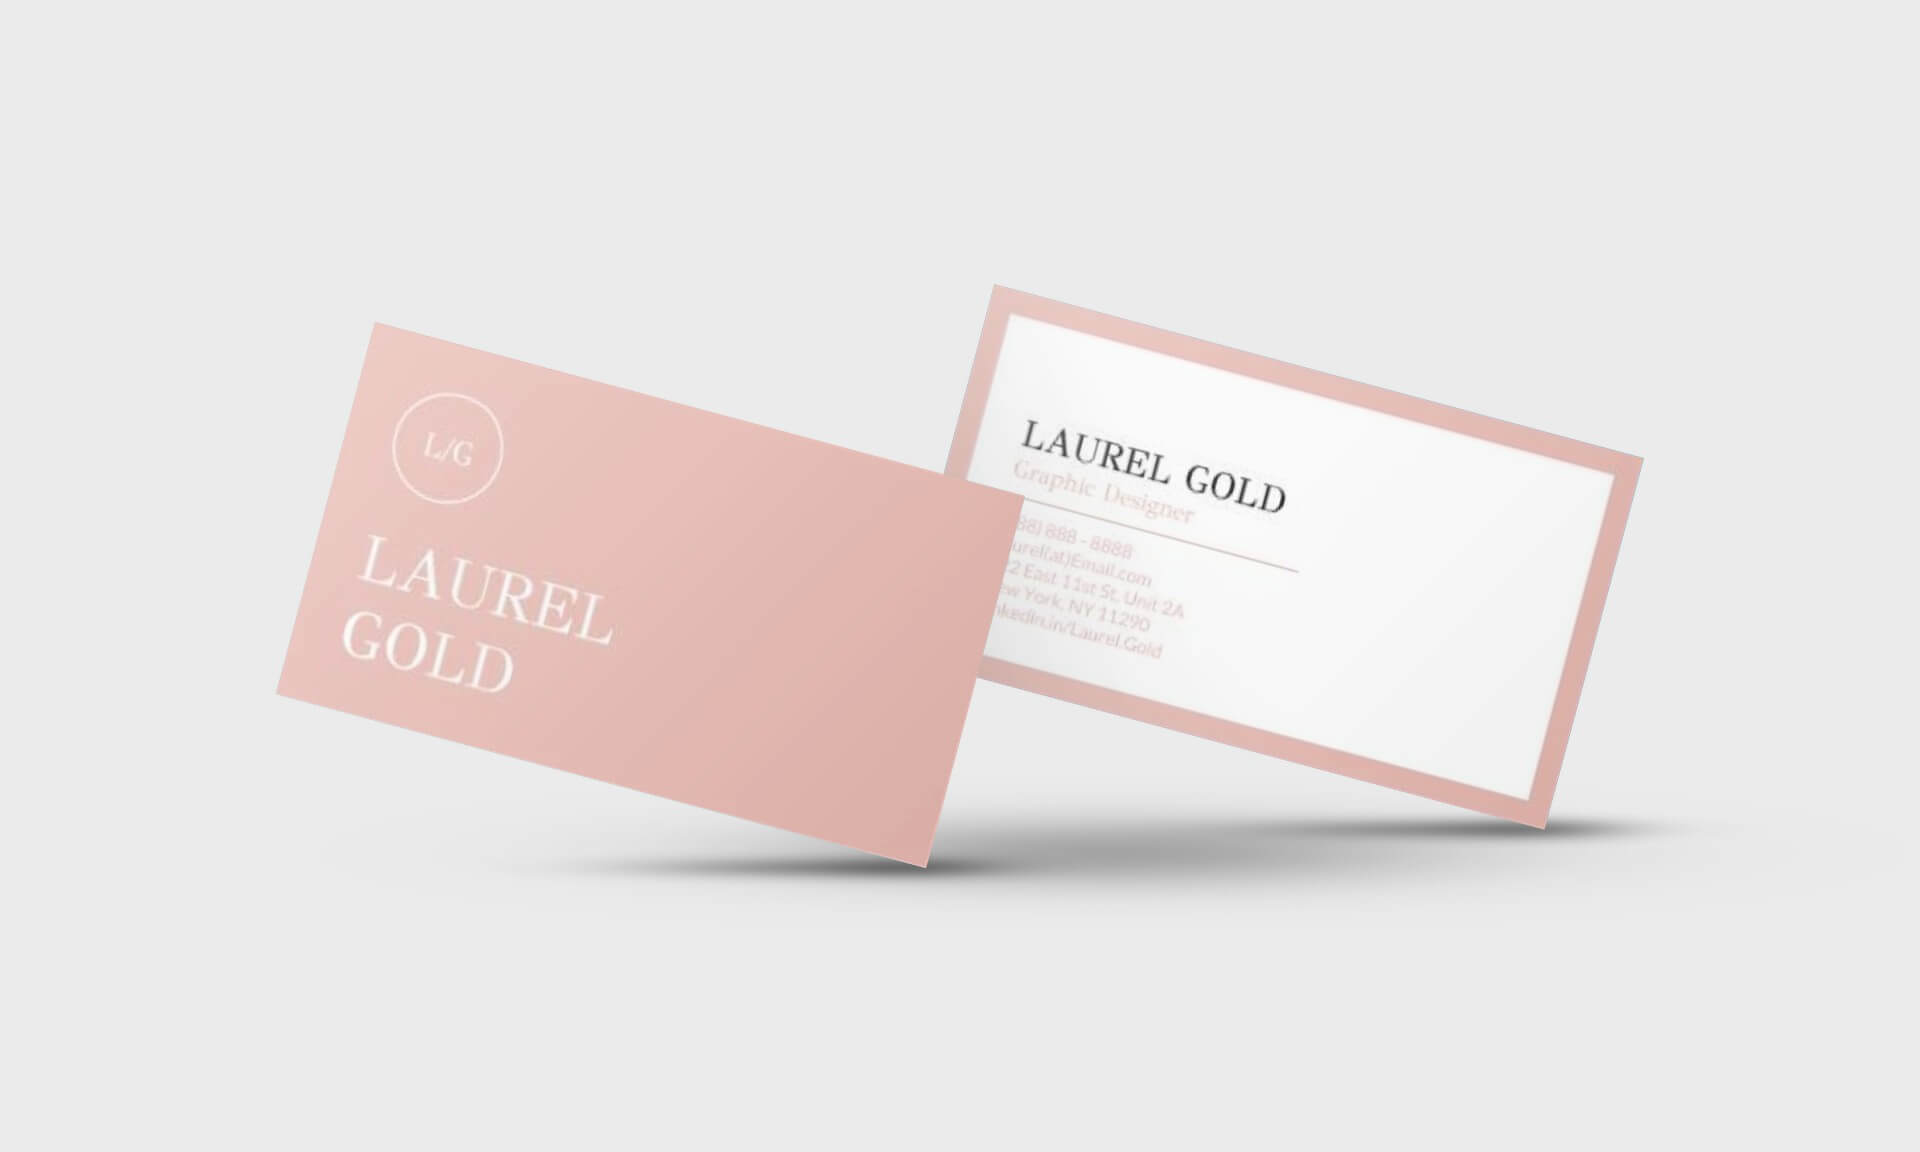 Laurel Gold Google Docs Business Card Template - Stand Out Shop Pertaining To Google Docs Business Card Template